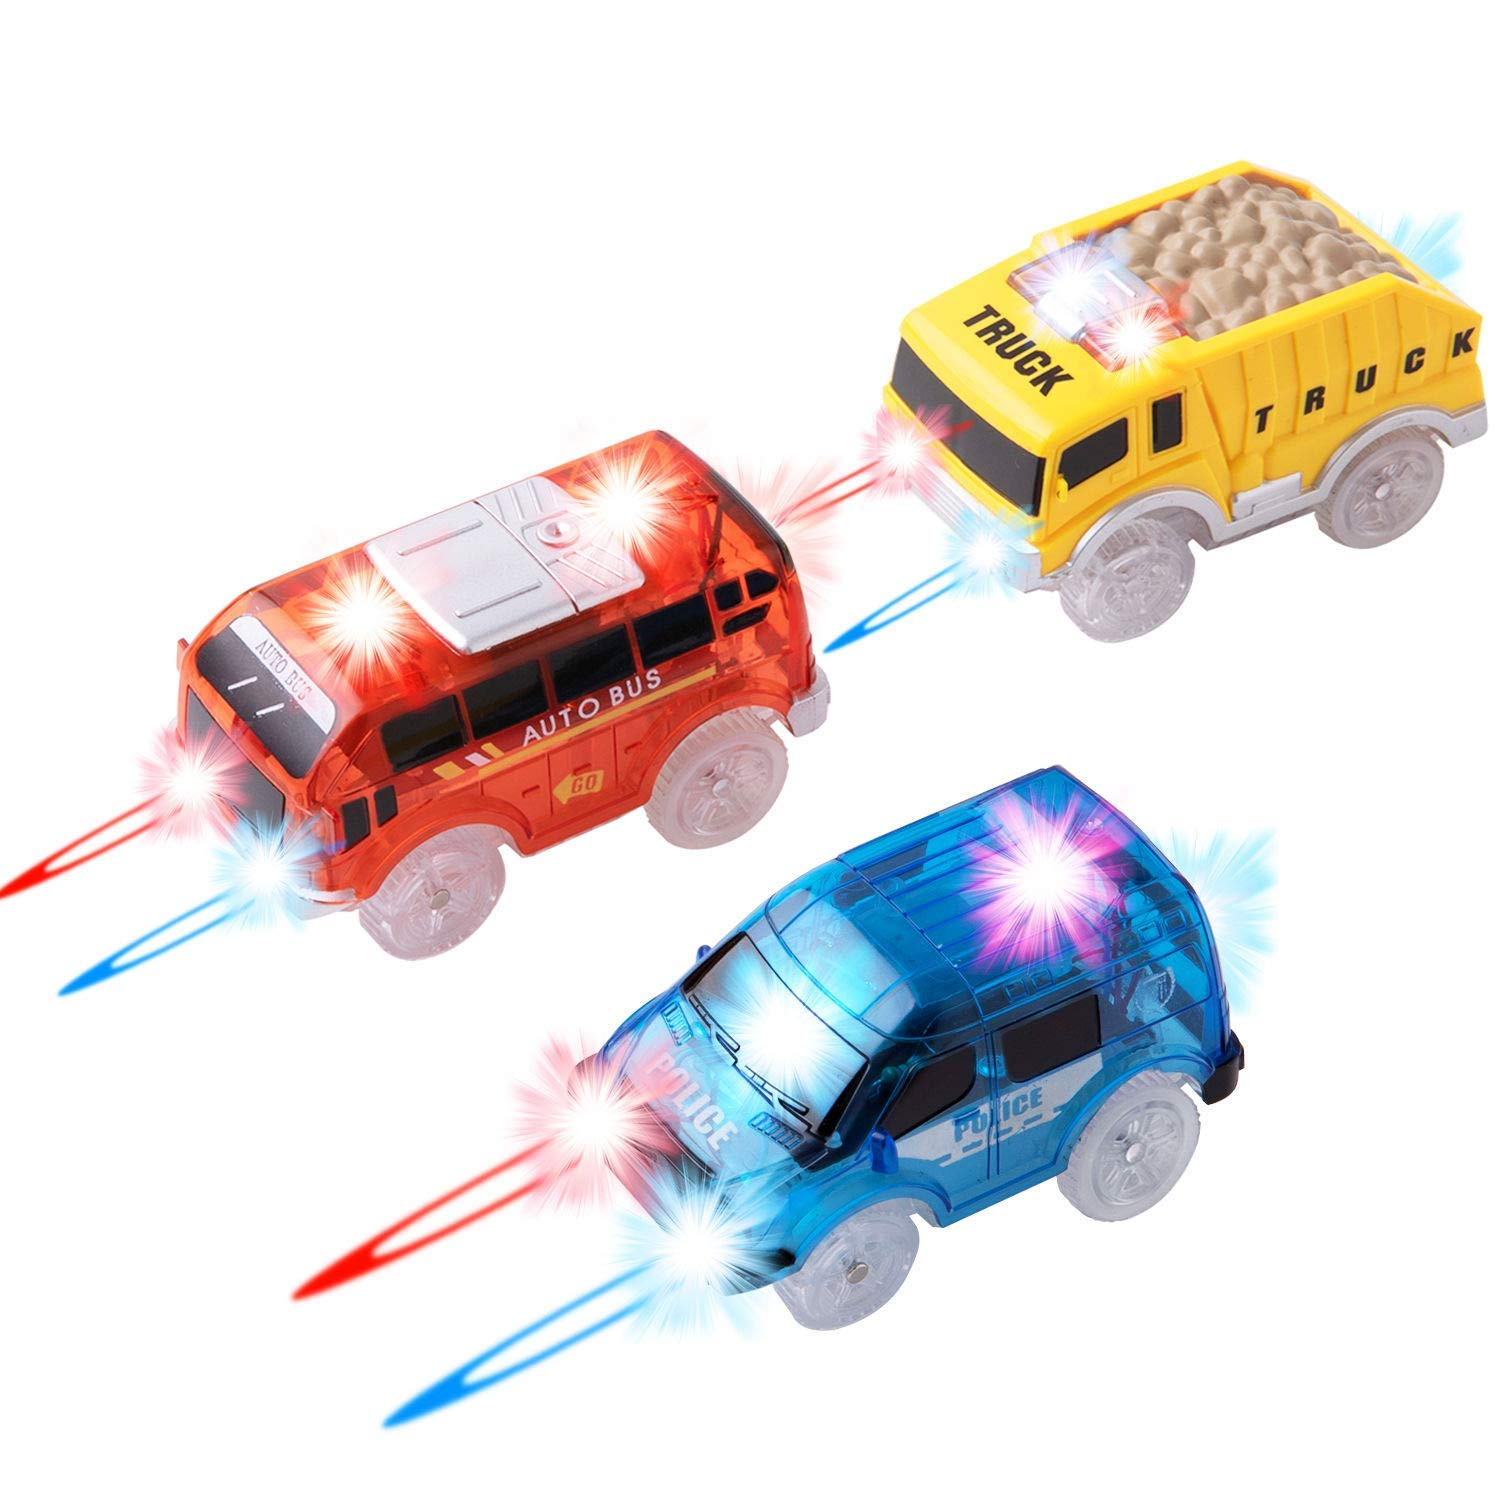 Track Cars Replacement Only Light Up Toy Cars with 5 Flashing LED Lights Toys Racing Car Track Accessories Compatible with Most Tracks for Kids, Boys, Girls Best Gifts 3Pack by Topsolid